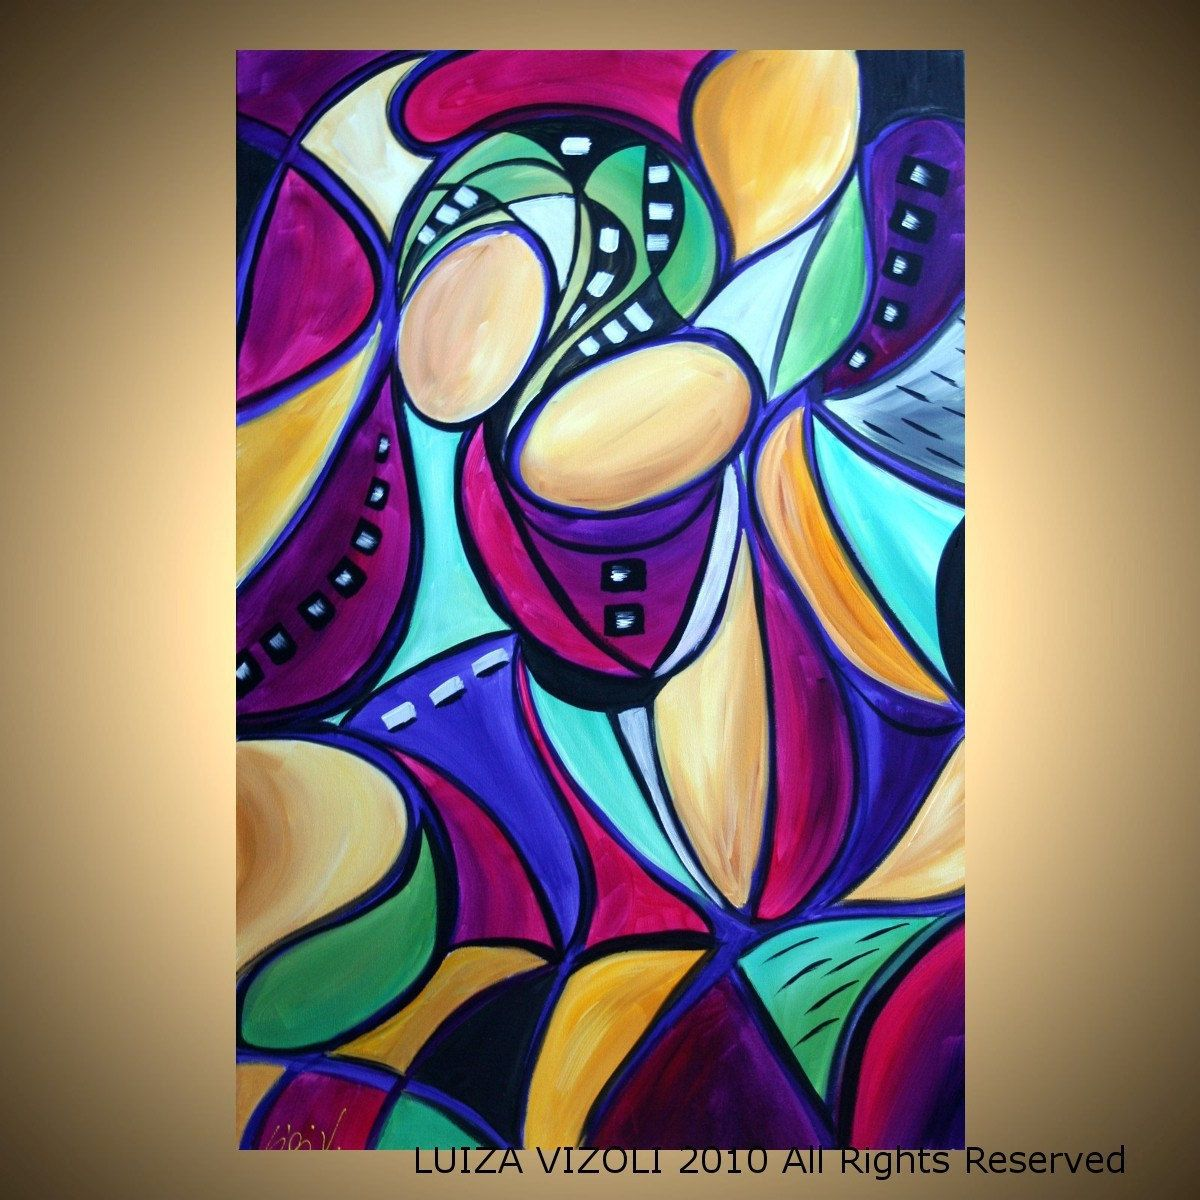 Iarts Contemporary Paintings On Canvas 3 Styles Canvas: Original Modern Abstract Contemporary Art Deco Painting On